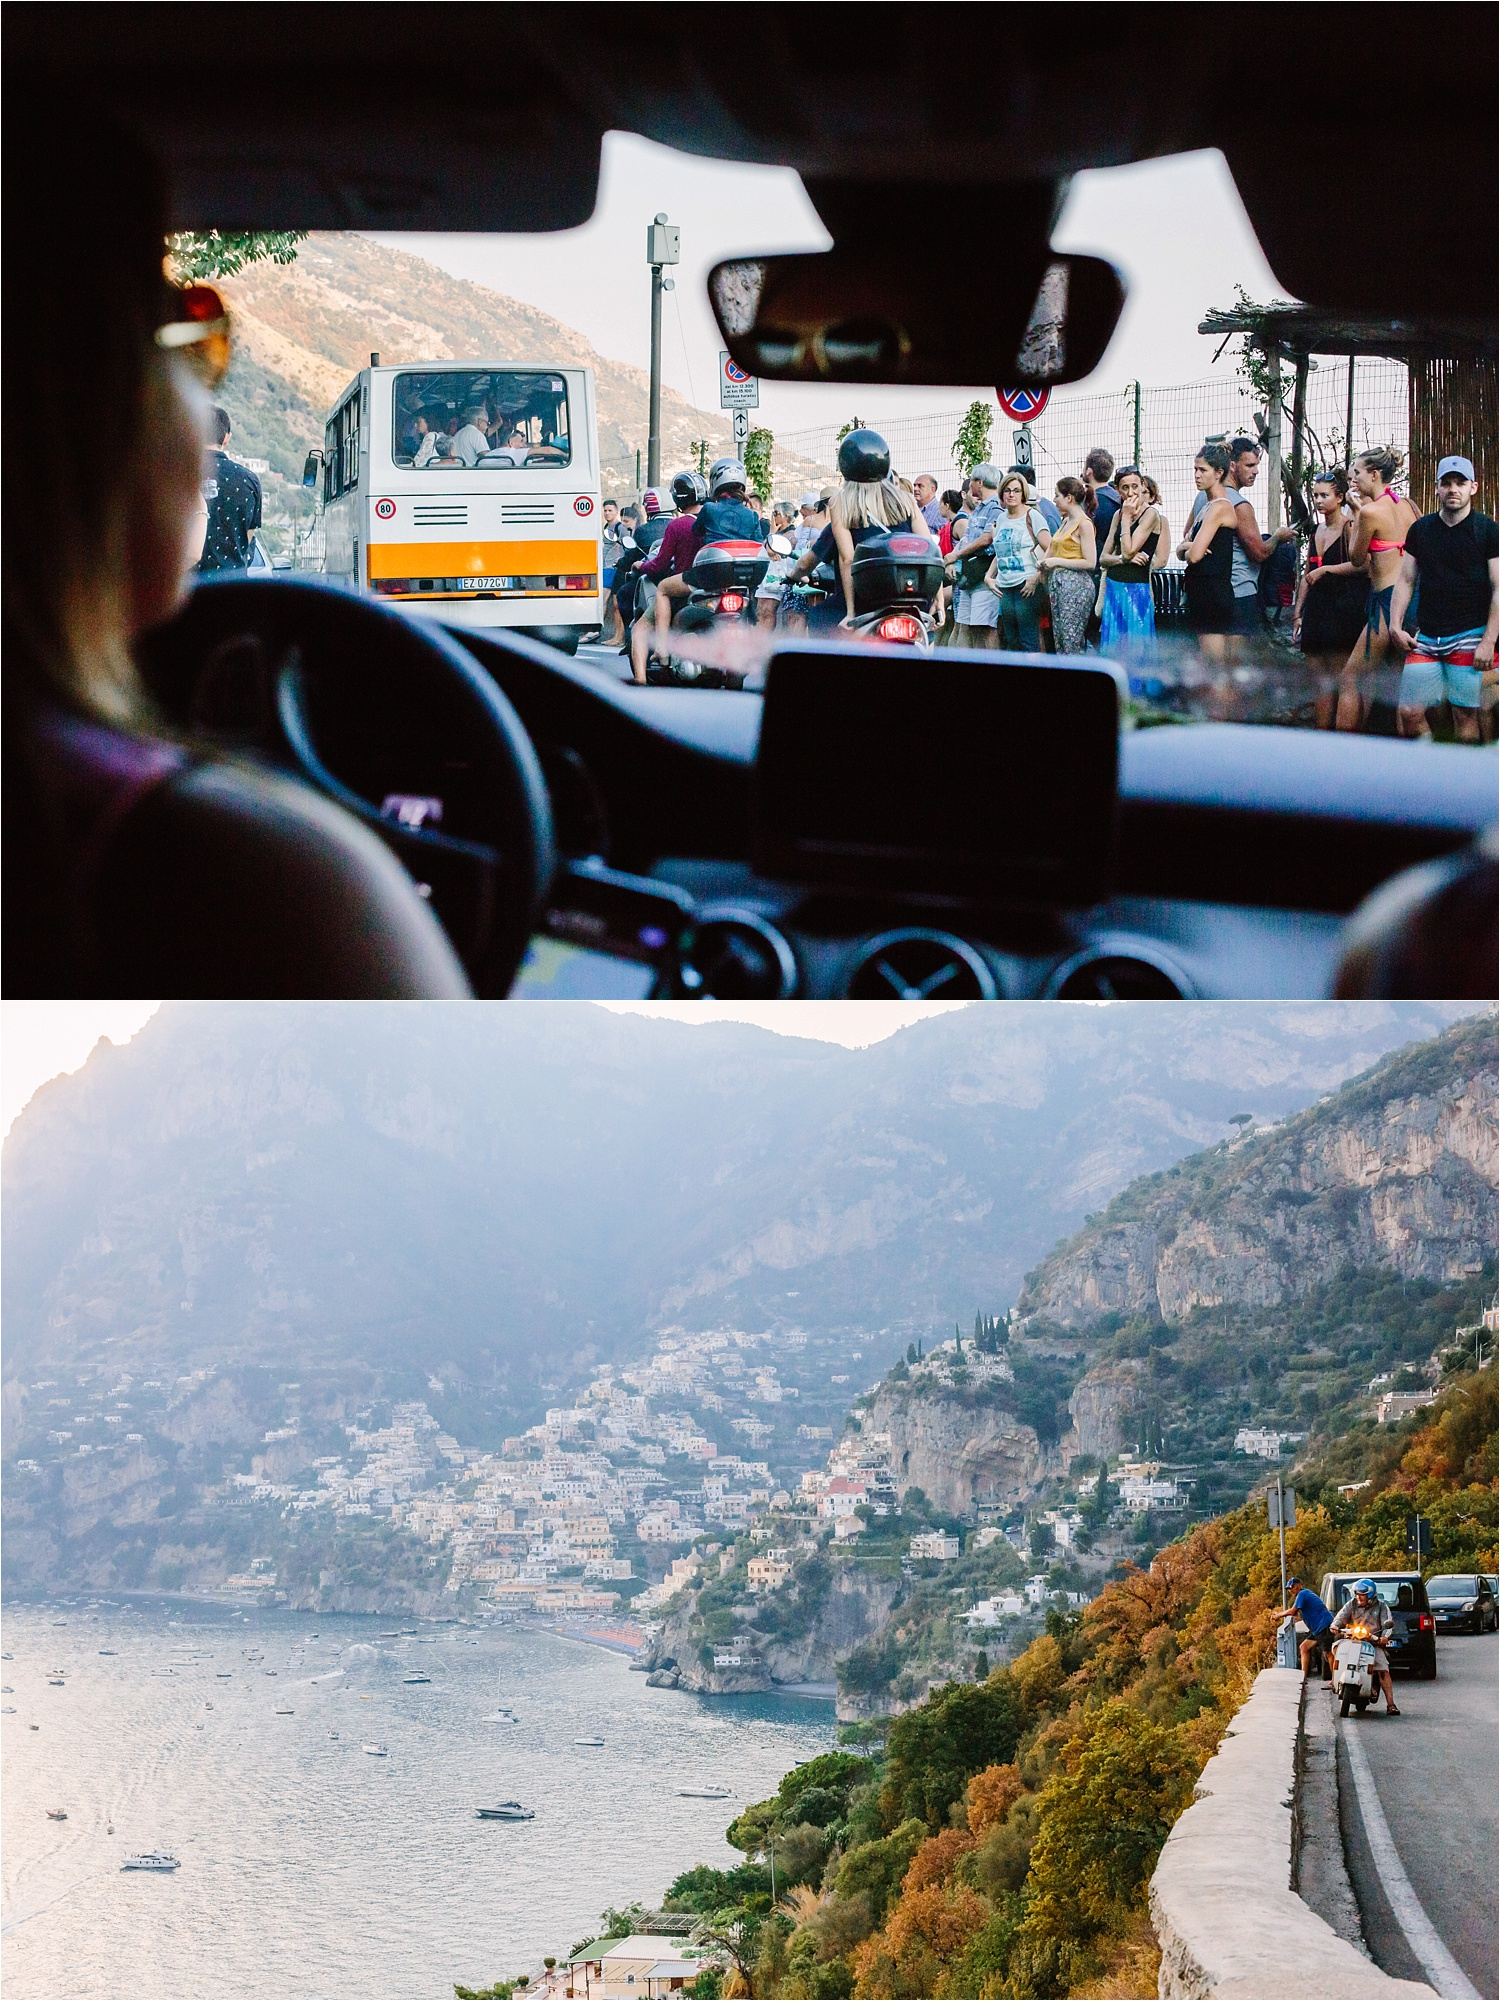 Cliff driving in Amalfi. I give Ashley props because I knew she was certainly terrified at times. There's no way to describe how curvy and narrow these roads were. Just wait until the bigger blog post to see more!